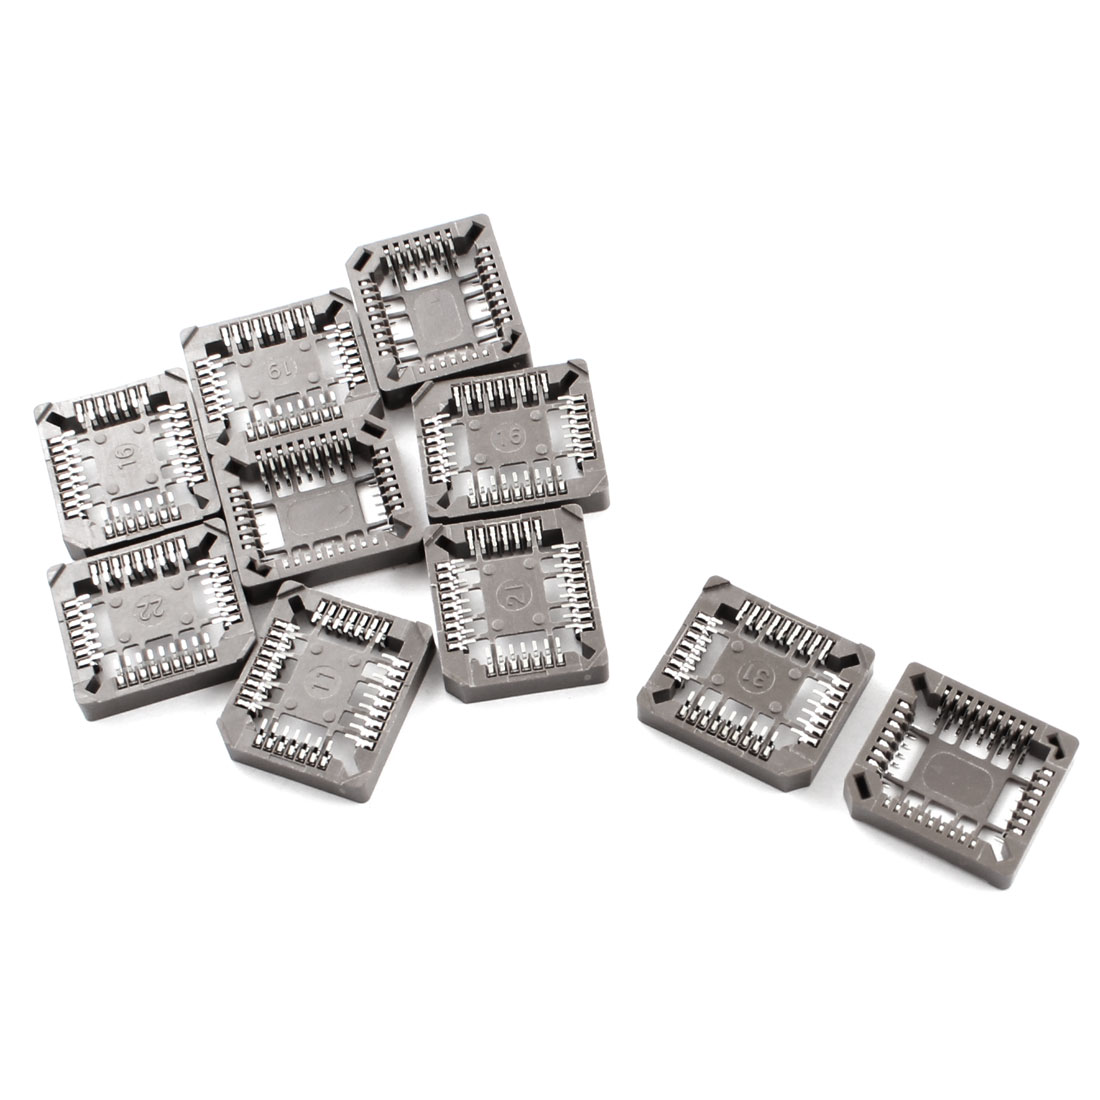 SMD SMT PLCC32 DIP IC Sockets 10 Pieces